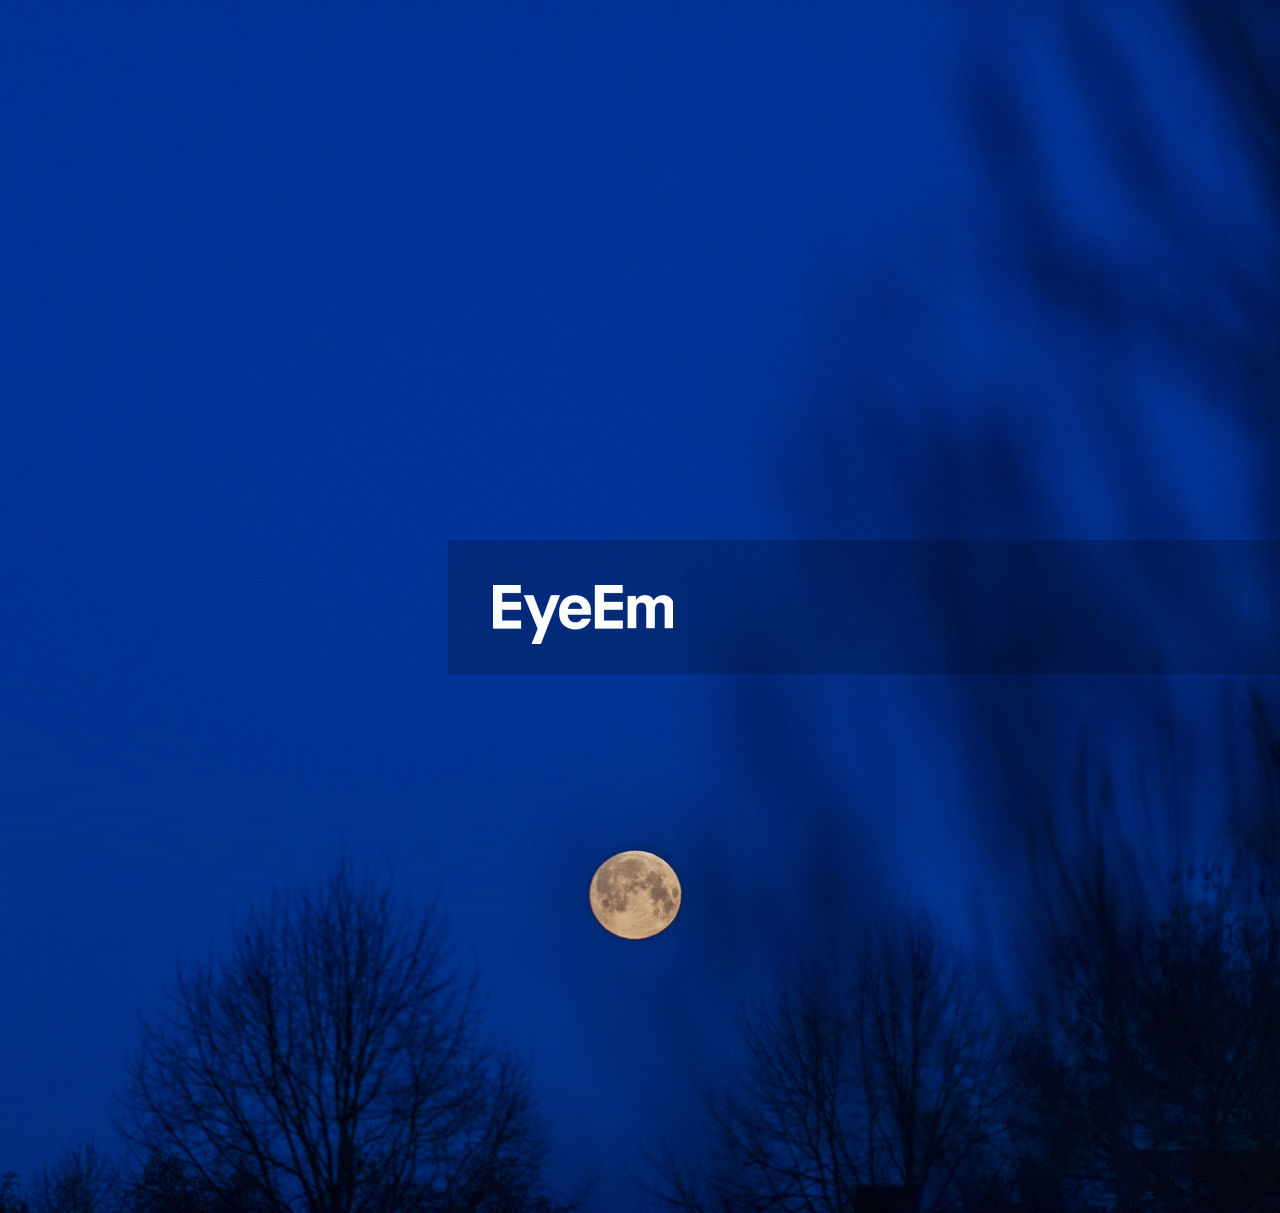 sky, moon, tree, blue, plant, low angle view, space, beauty in nature, no people, tranquility, nature, night, bare tree, astronomy, tranquil scene, scenics - nature, full moon, dusk, planetary moon, outdoors, moonlight